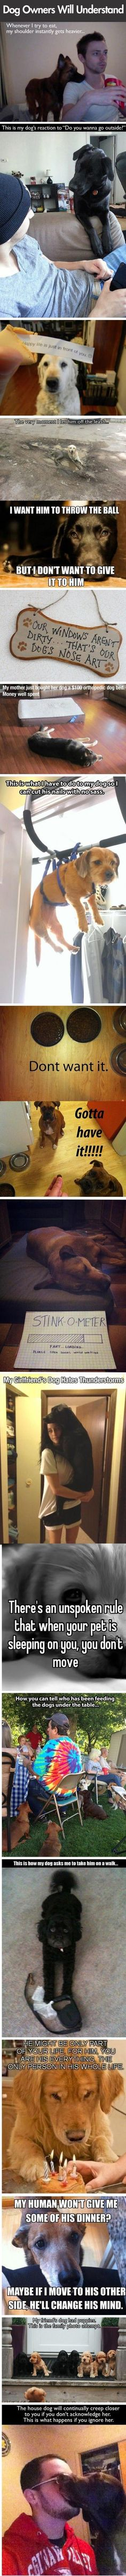 Hilarious images of the day -82 pics- Dog Owners Will Understand (Compilation)